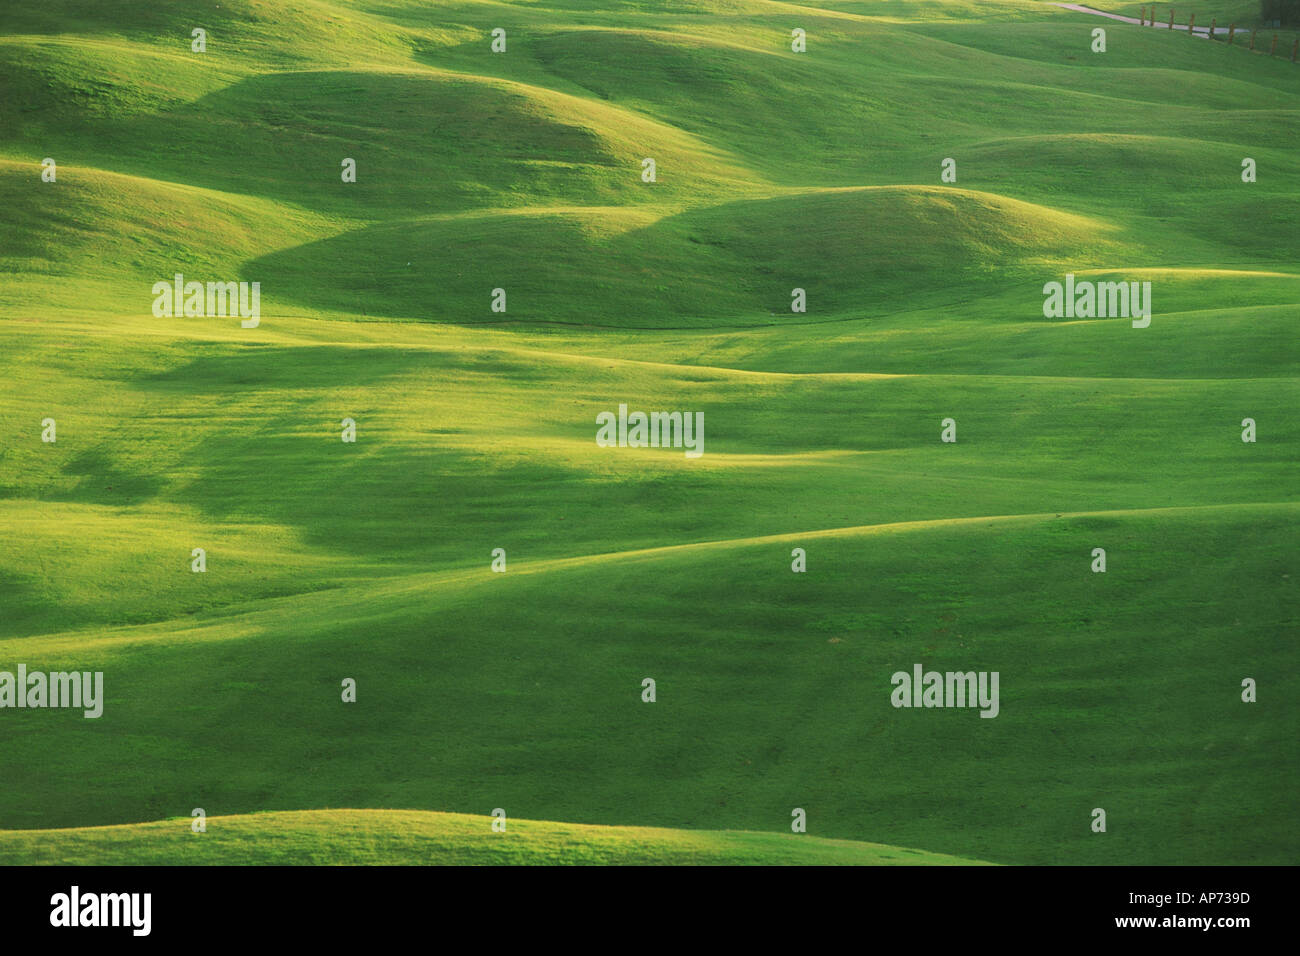 Pure green fairway on golf course at Costa del Sol in Spain - Stock Image